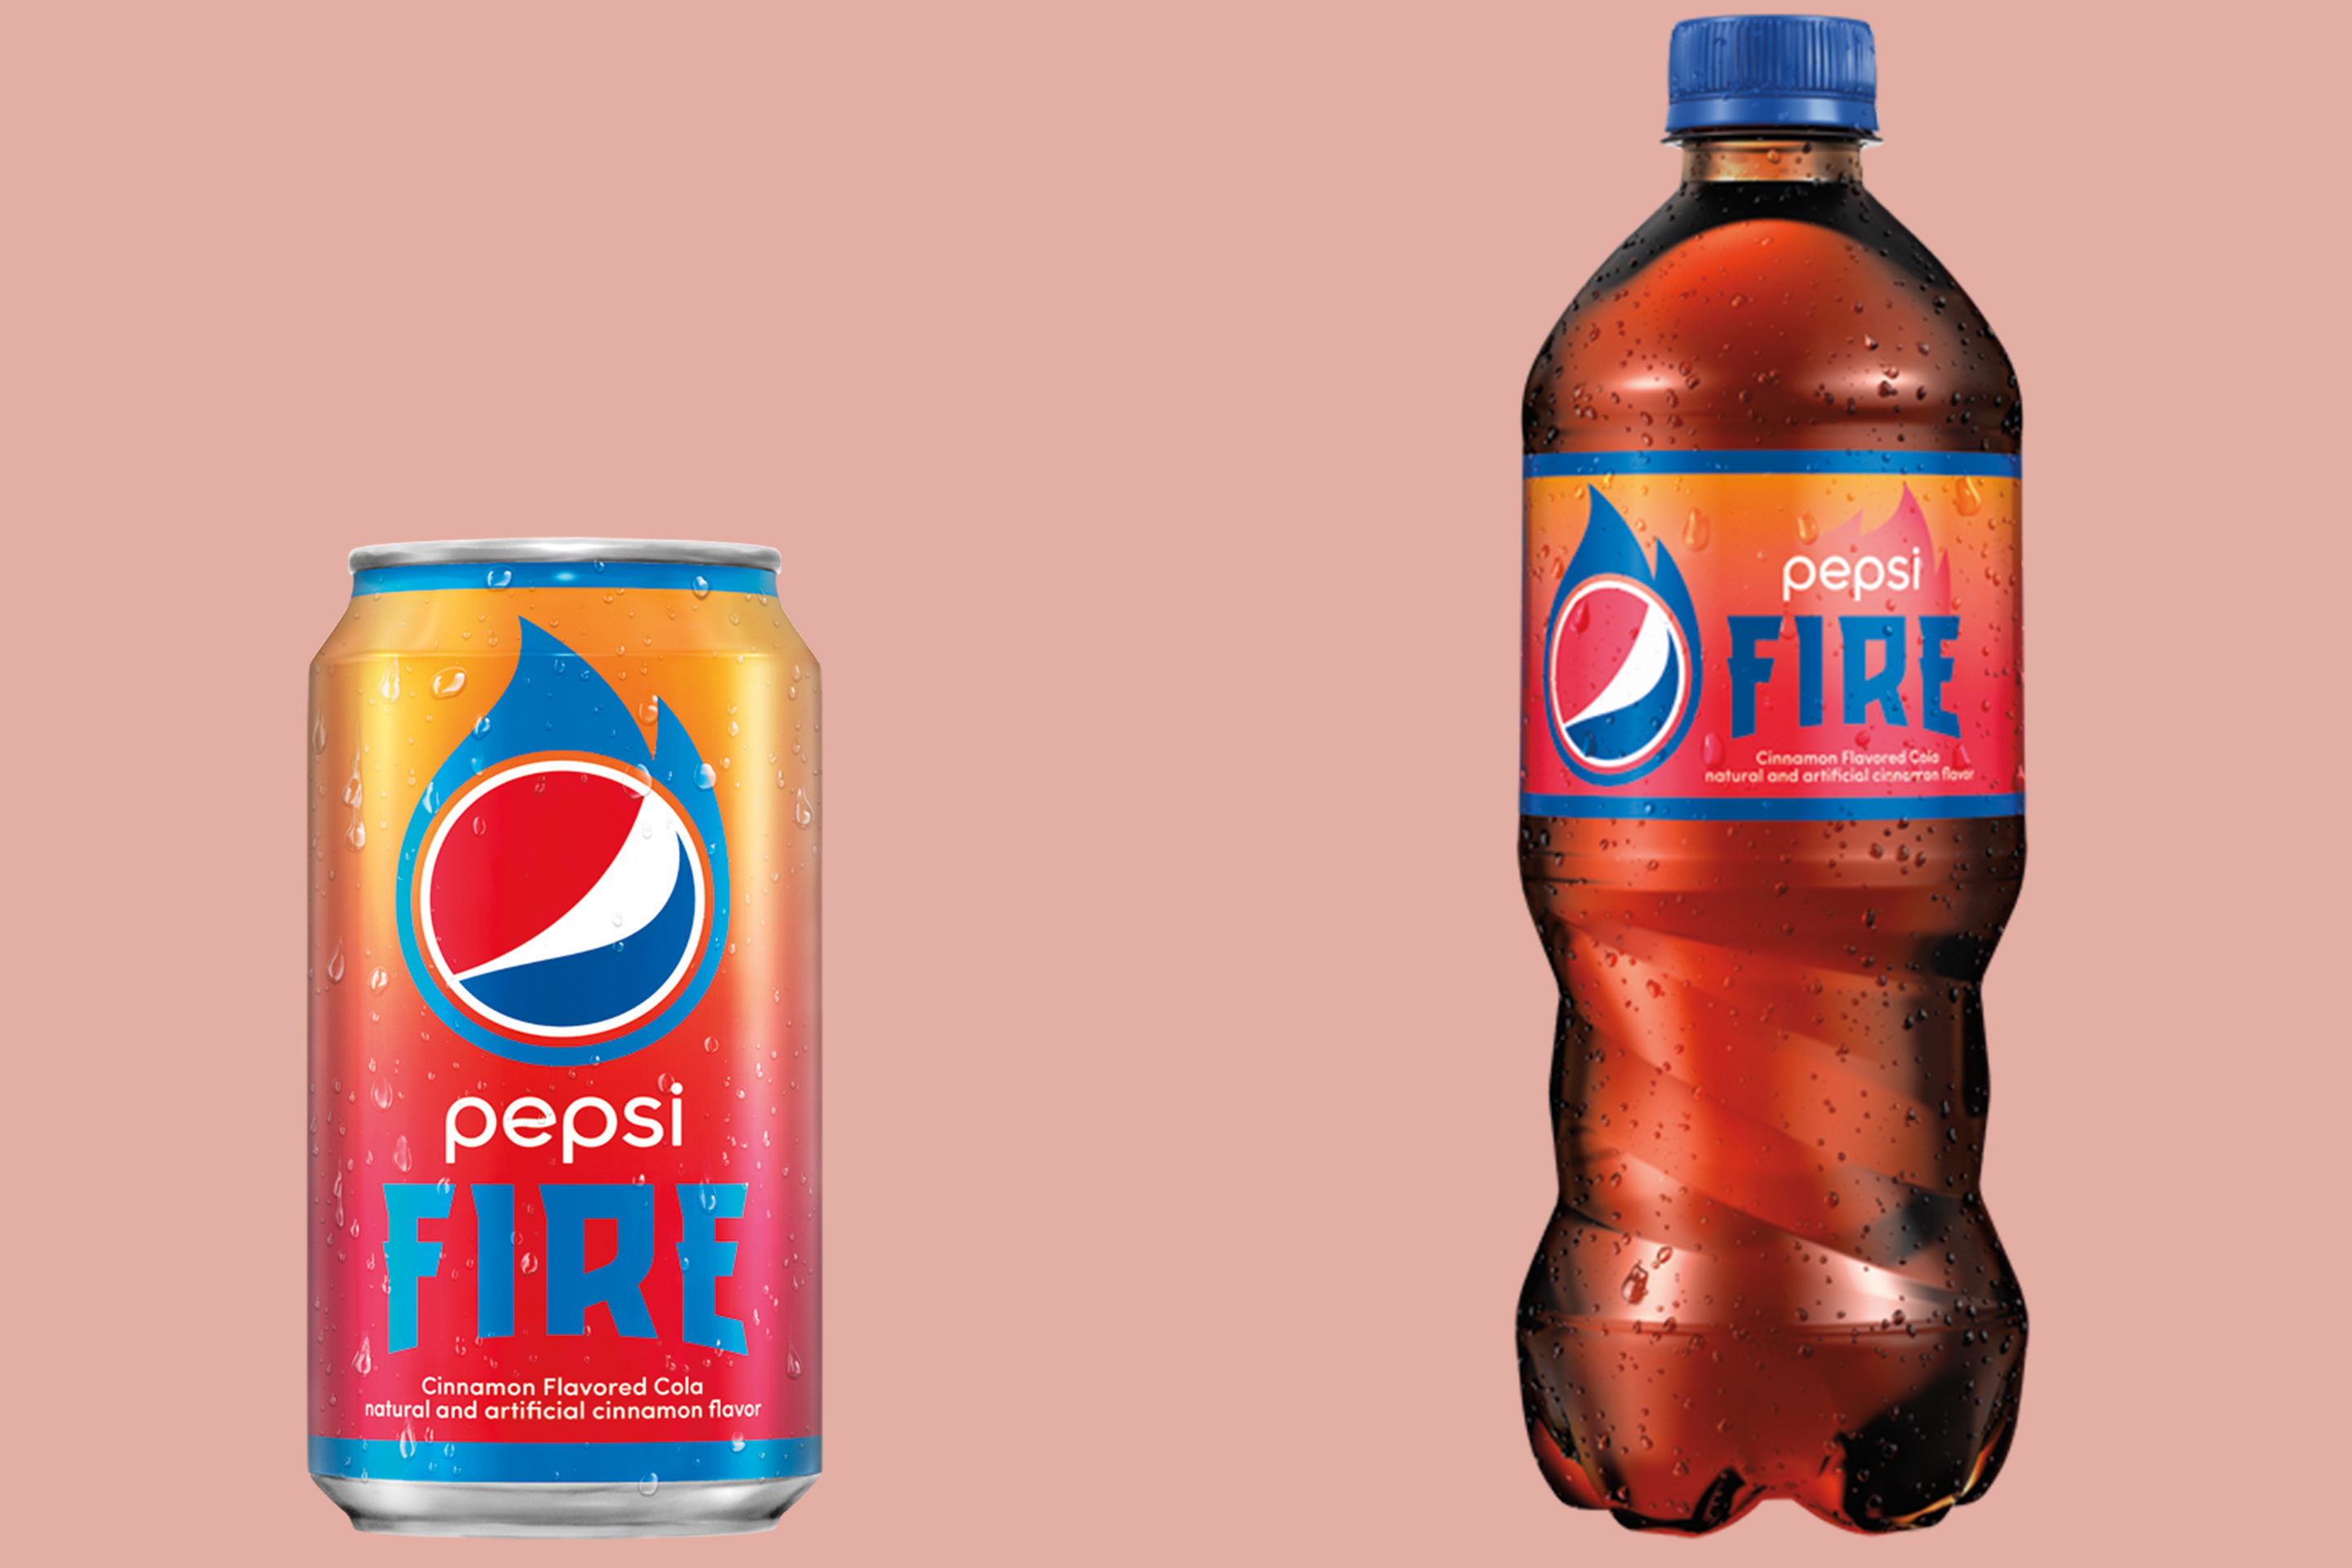 PepsiCo has launched a new limited-edition soda, a cinnamon-flavored beverage called Pepsi Fire.